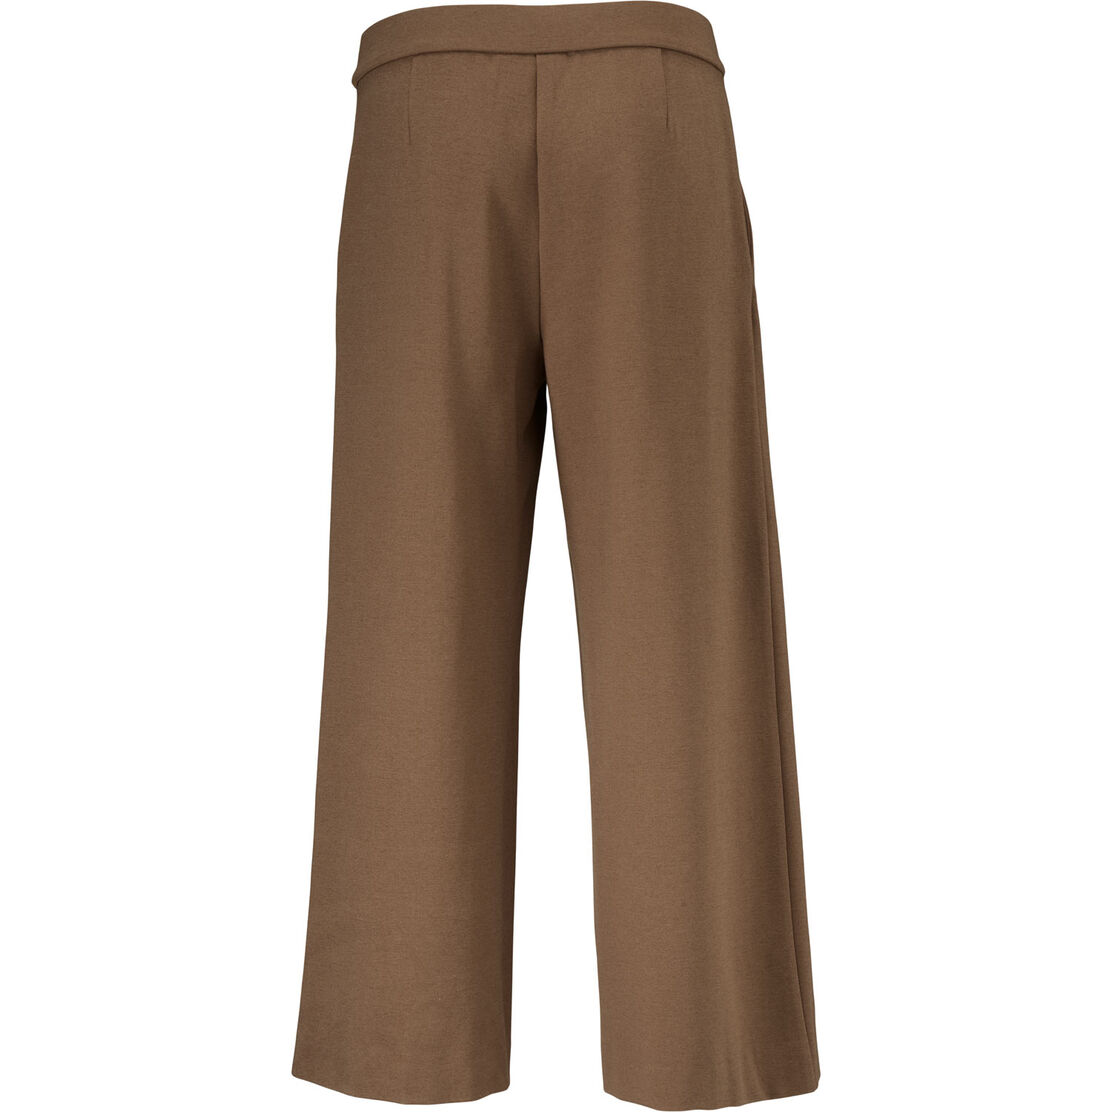 PIANA JERSEY TROUSERS, Monk's Robe, hi-res